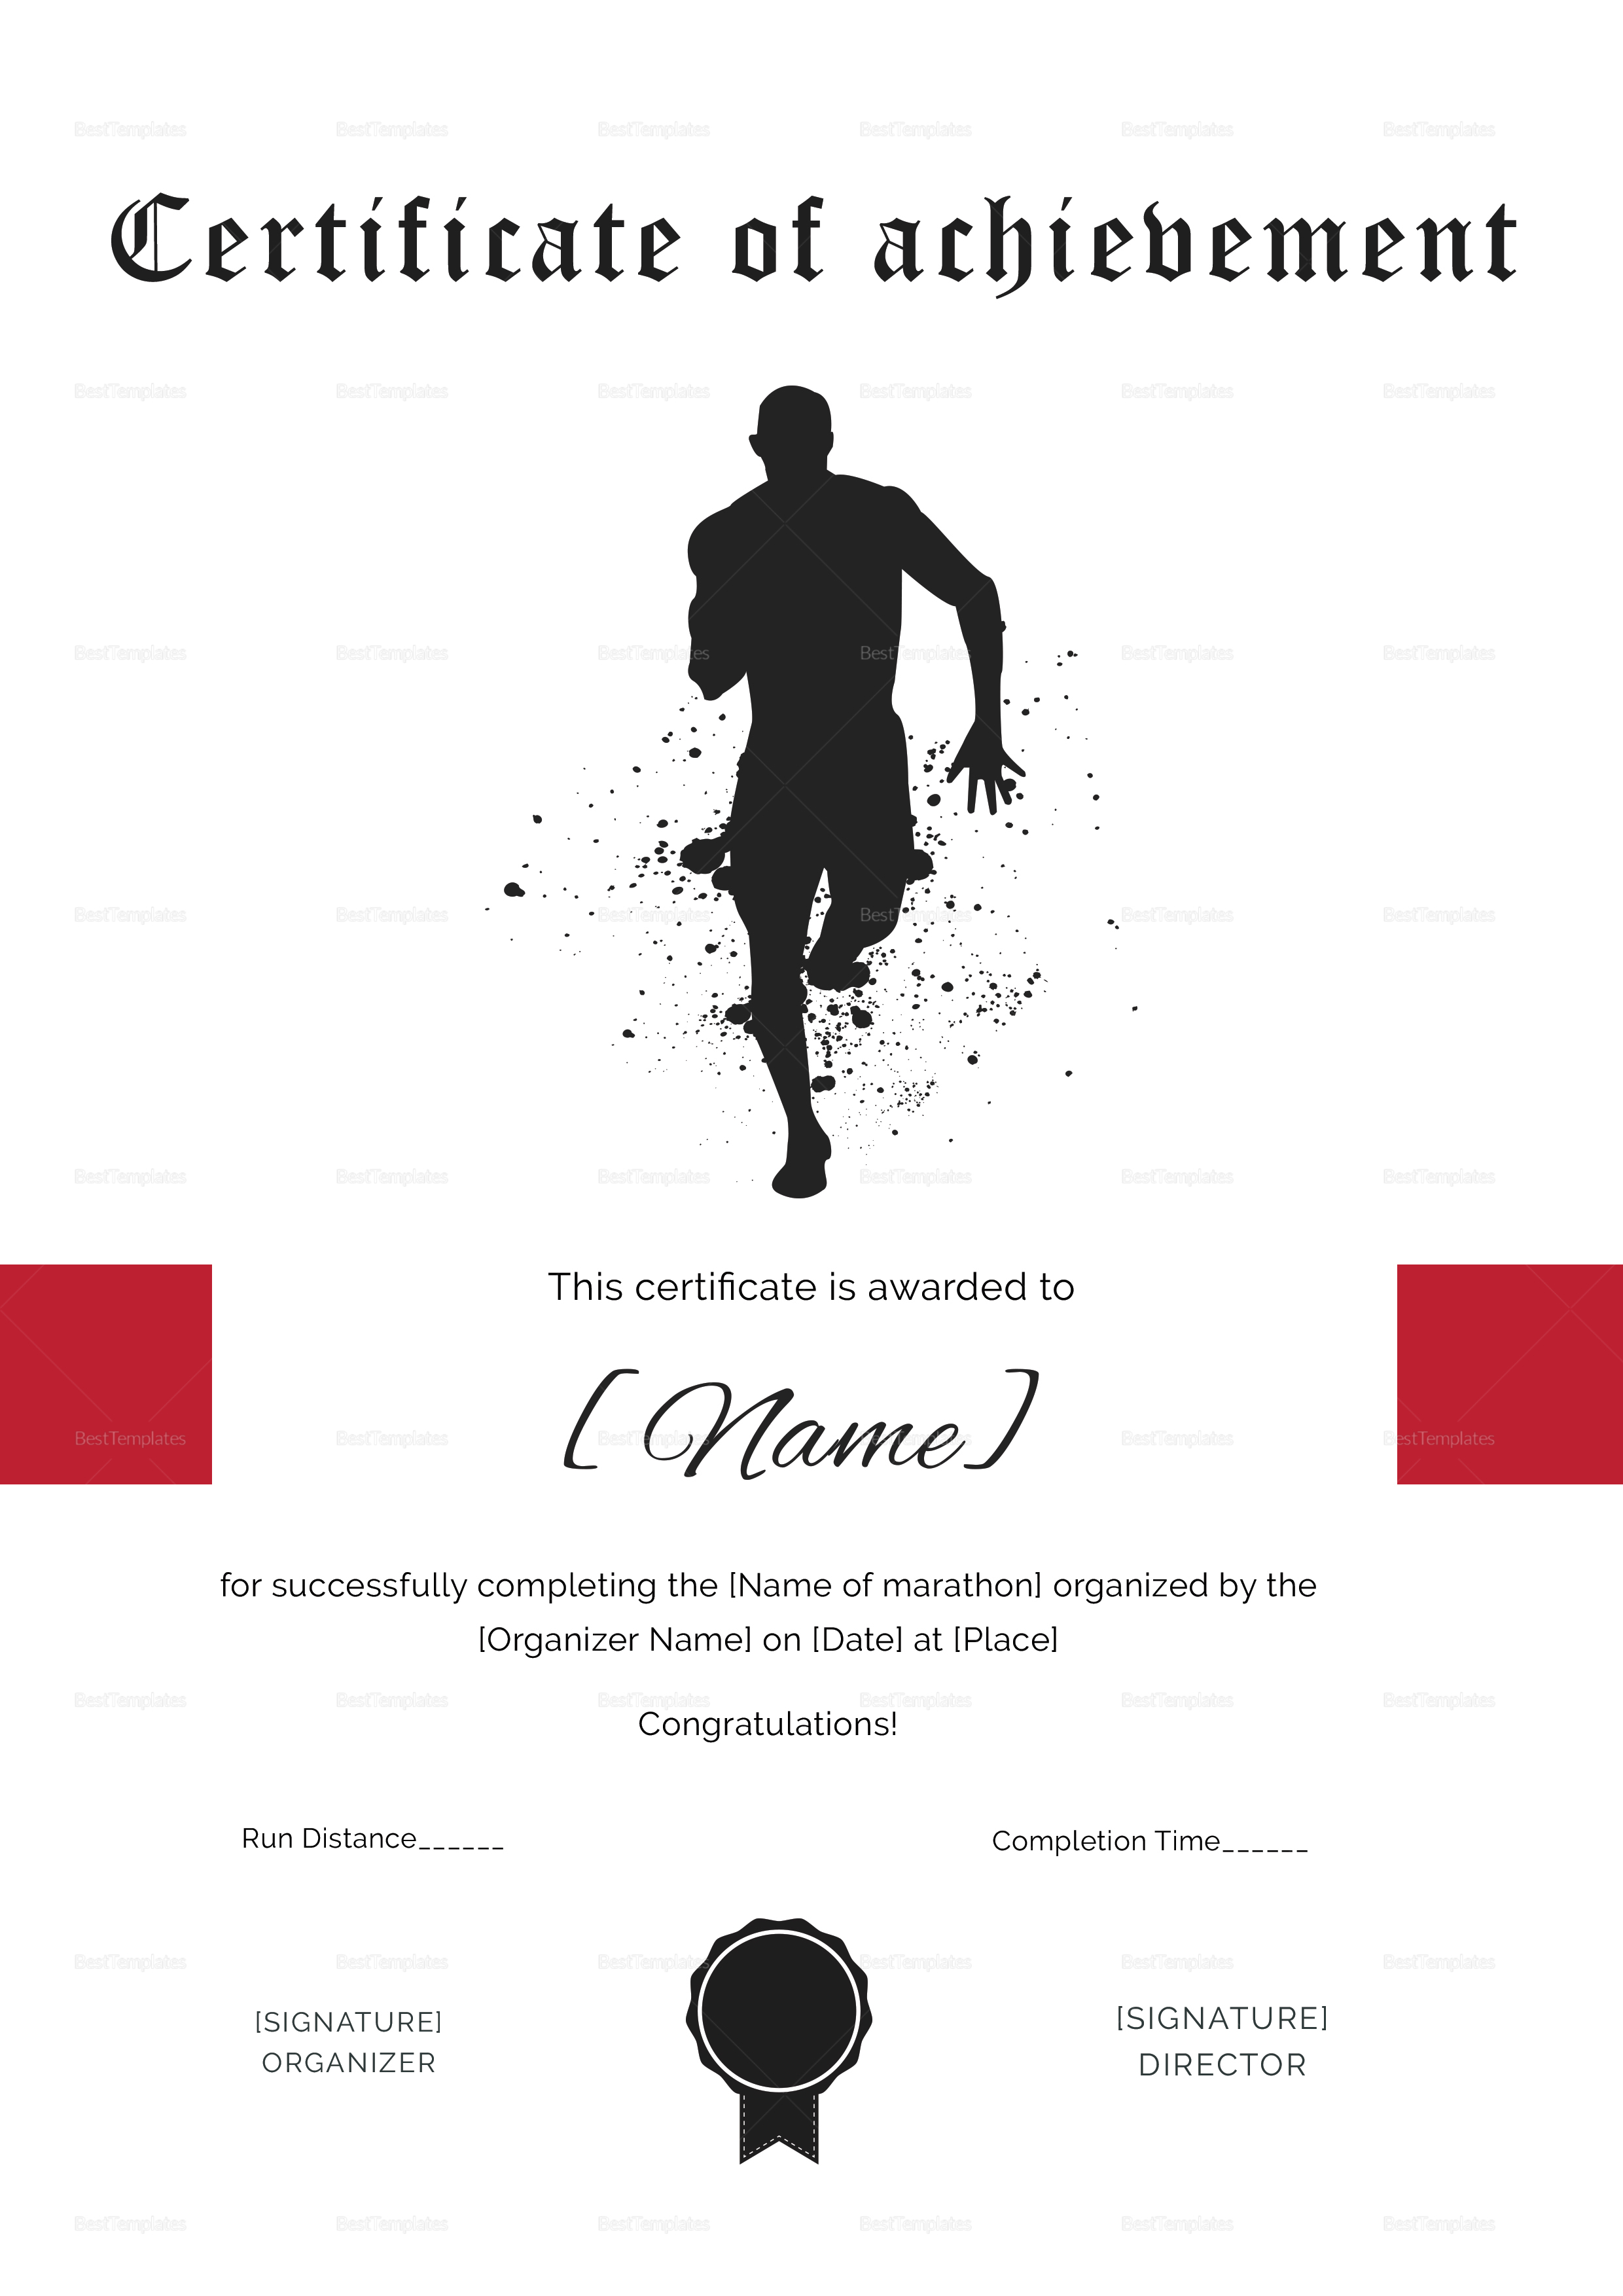 Certificate of Achievement for Running